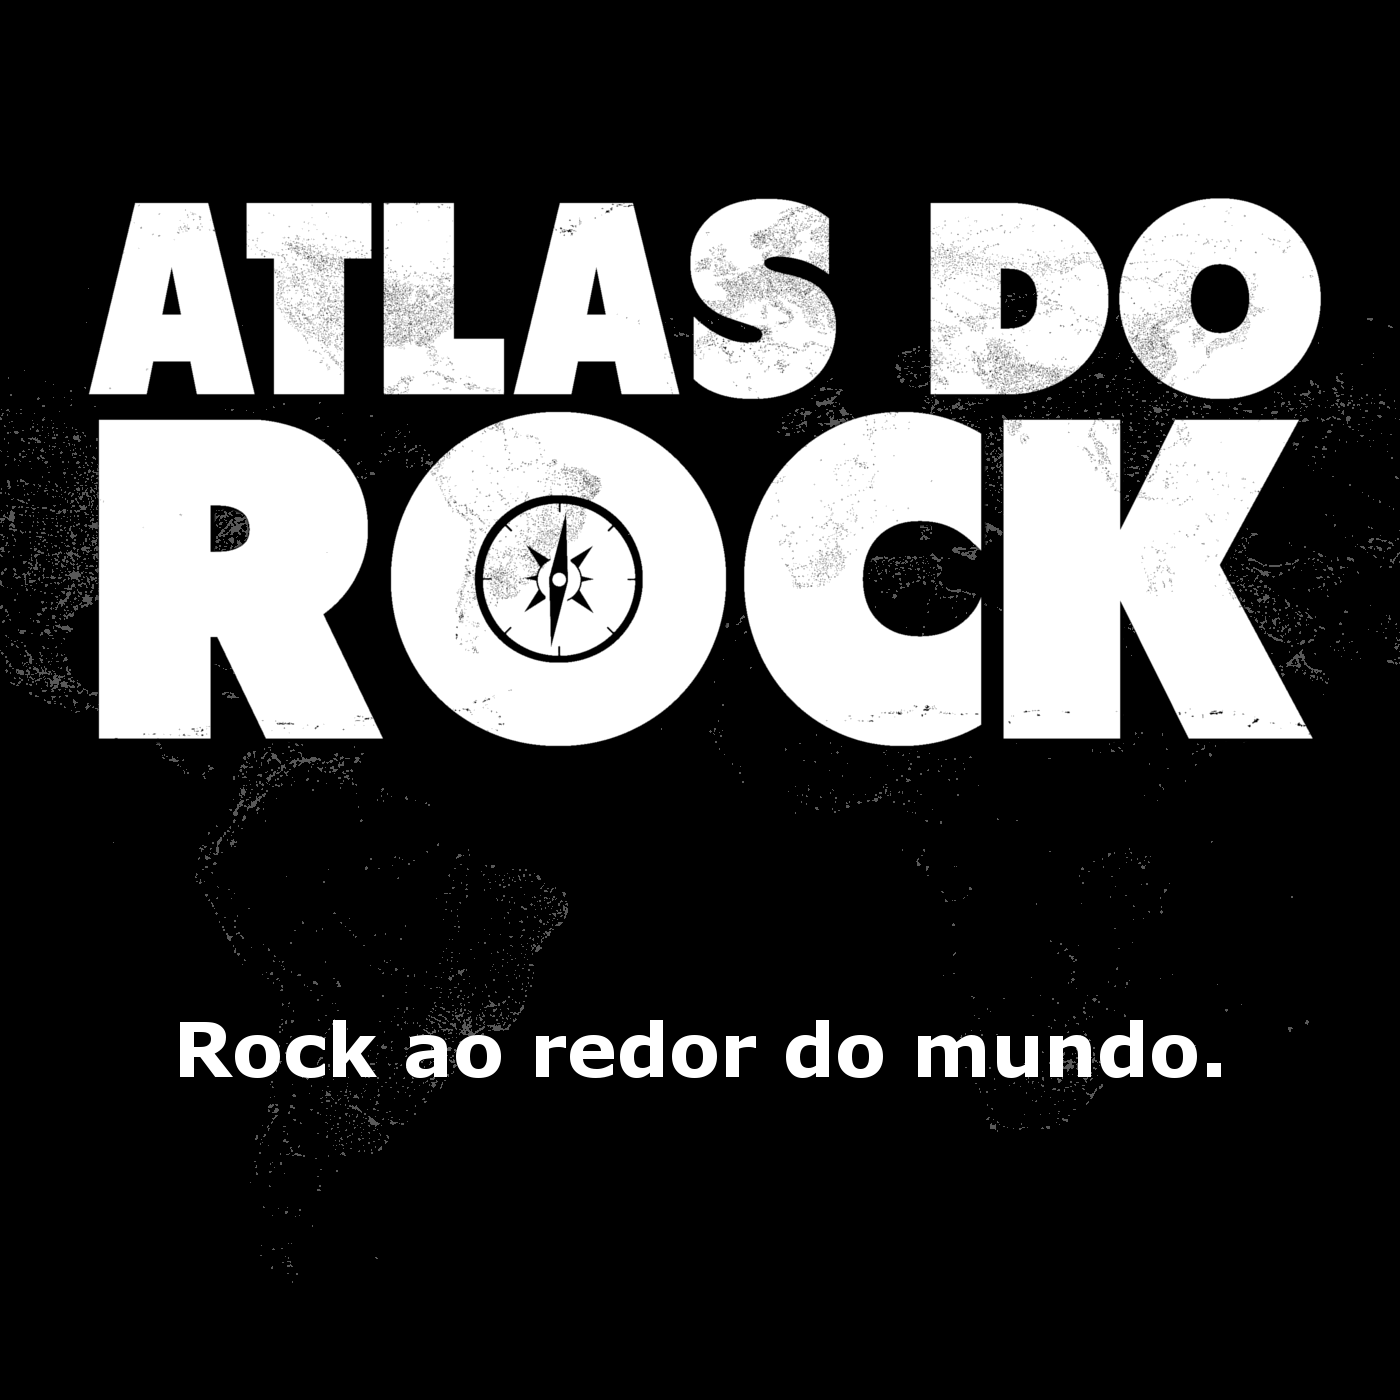 Imagem do Atlas do Rock